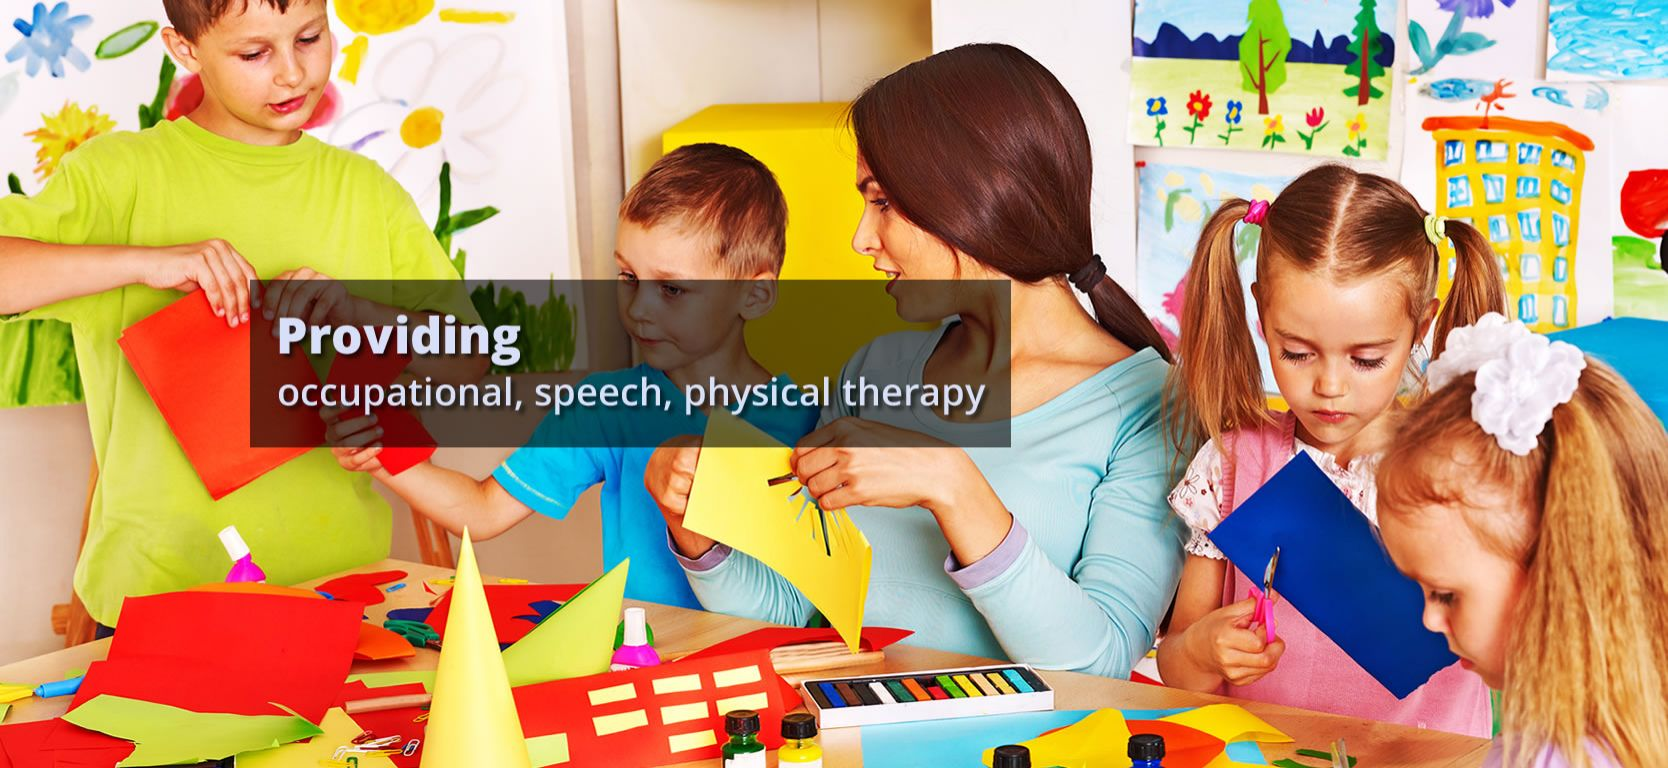 occupational-speech-physical-therapy